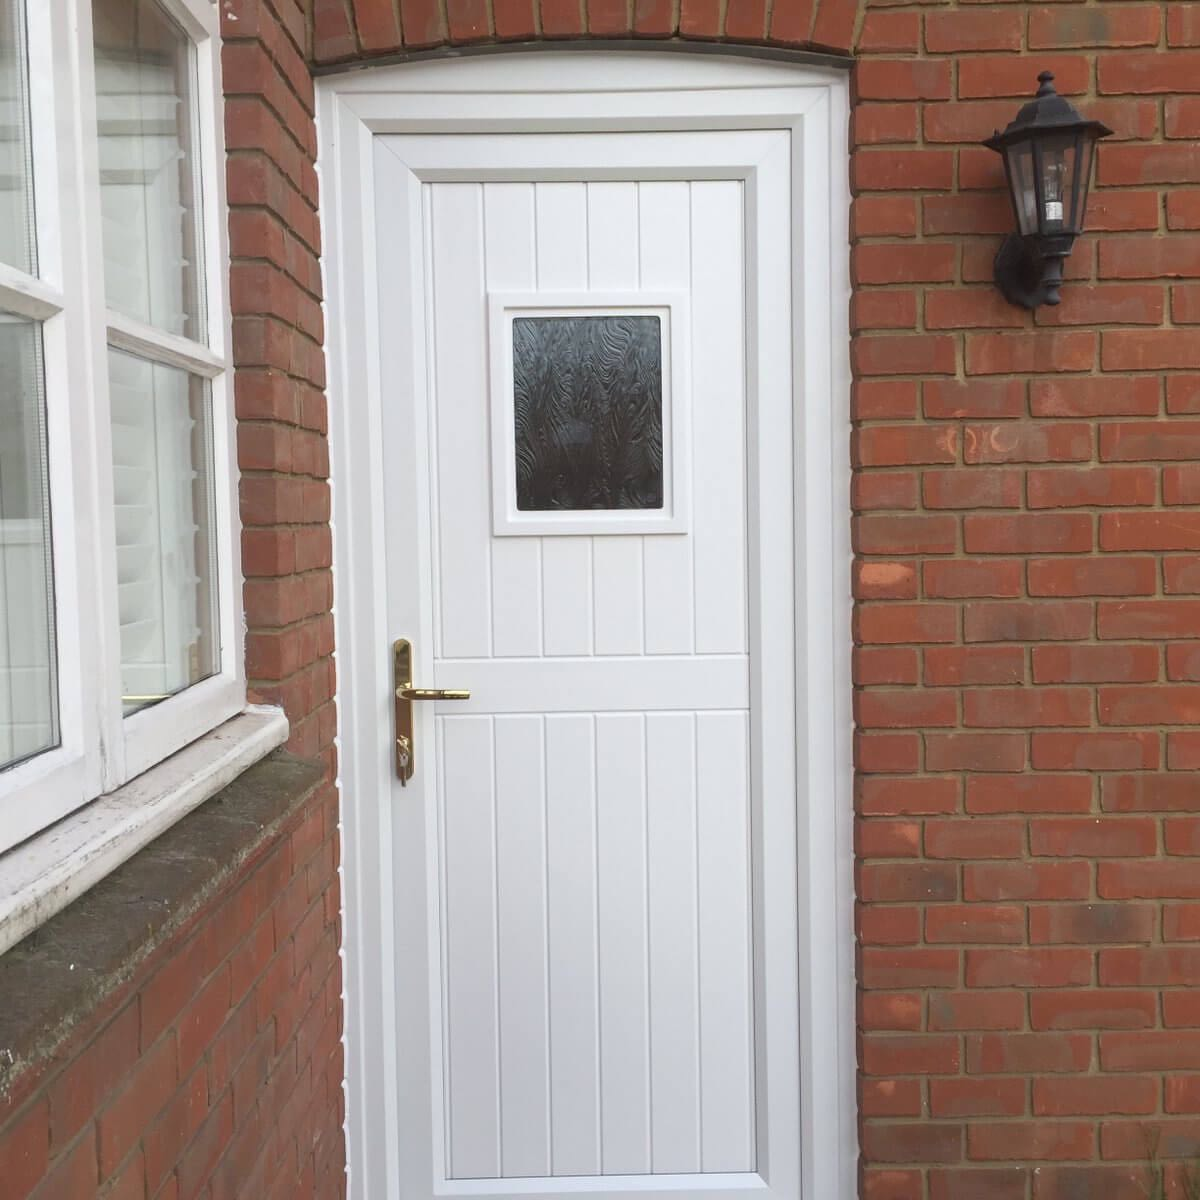 Doors nottingham the nottingham window company supply for Composite windows